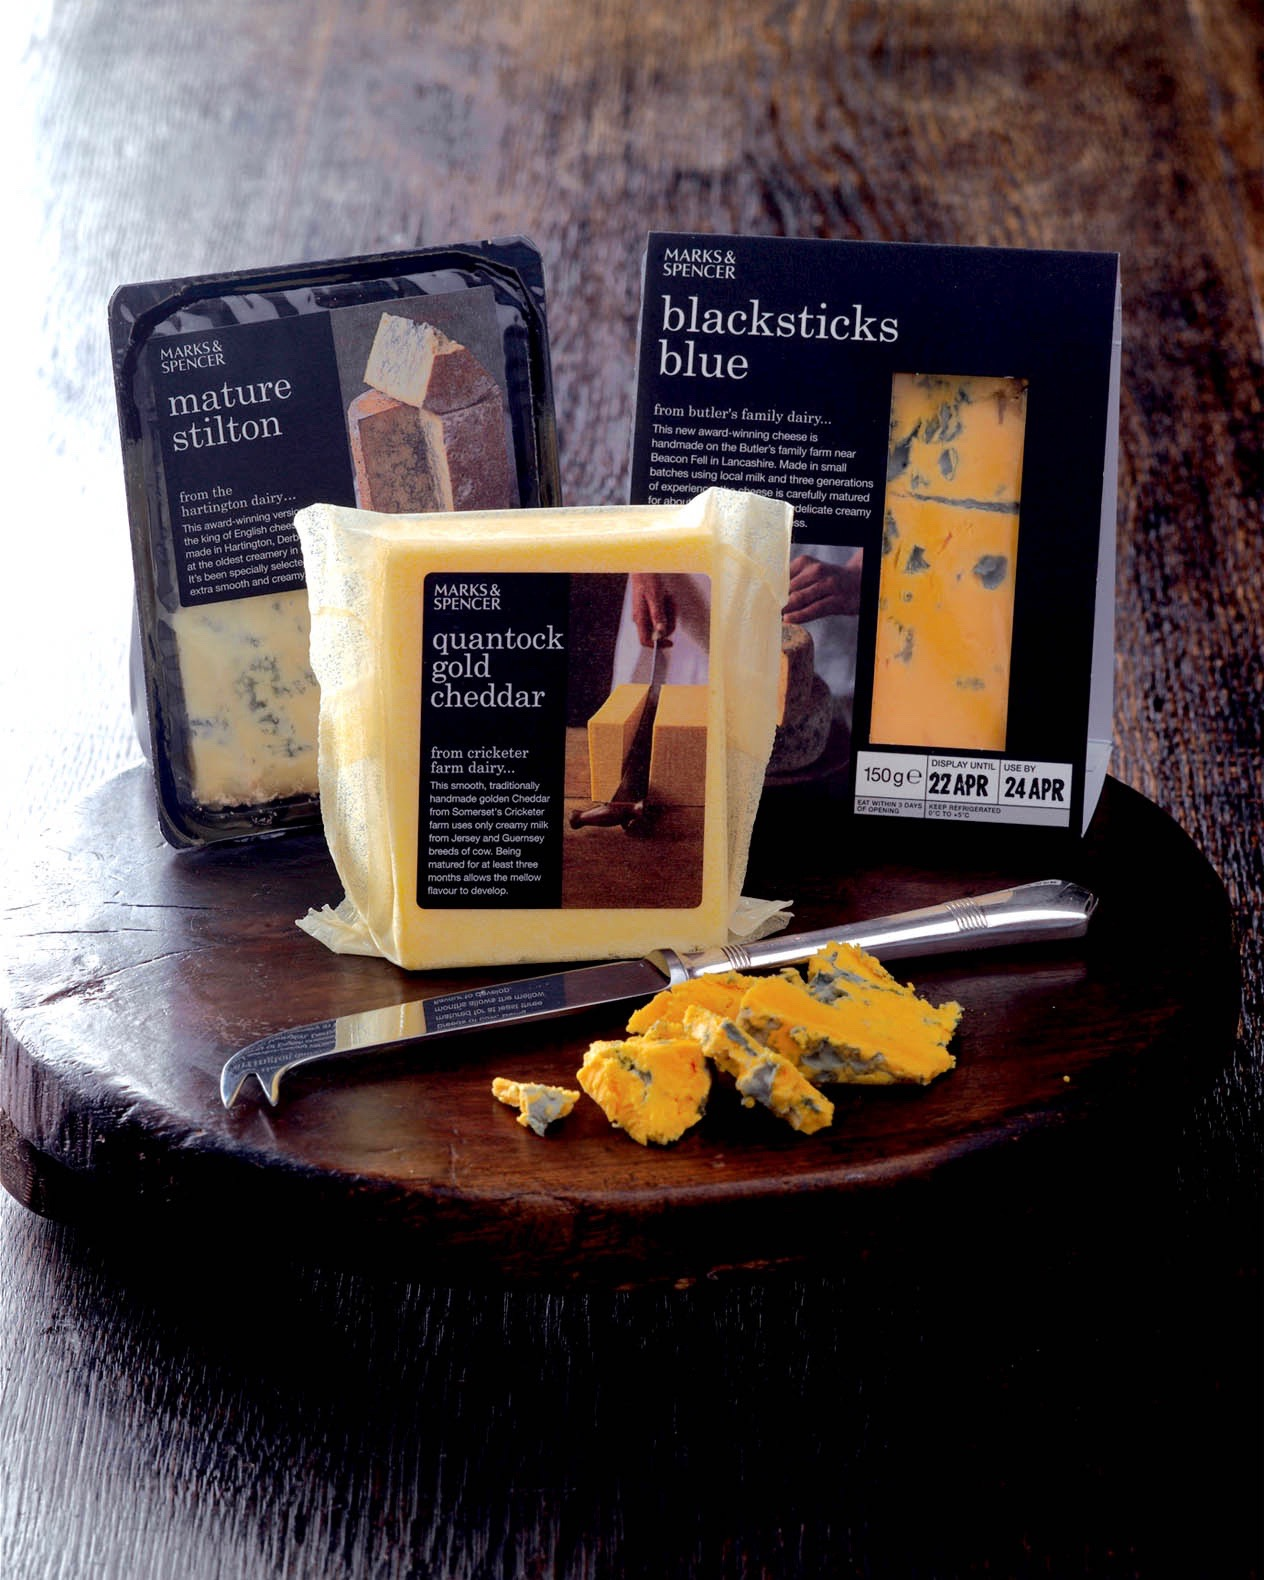 'Speciality' cheese packaging copy for M&S